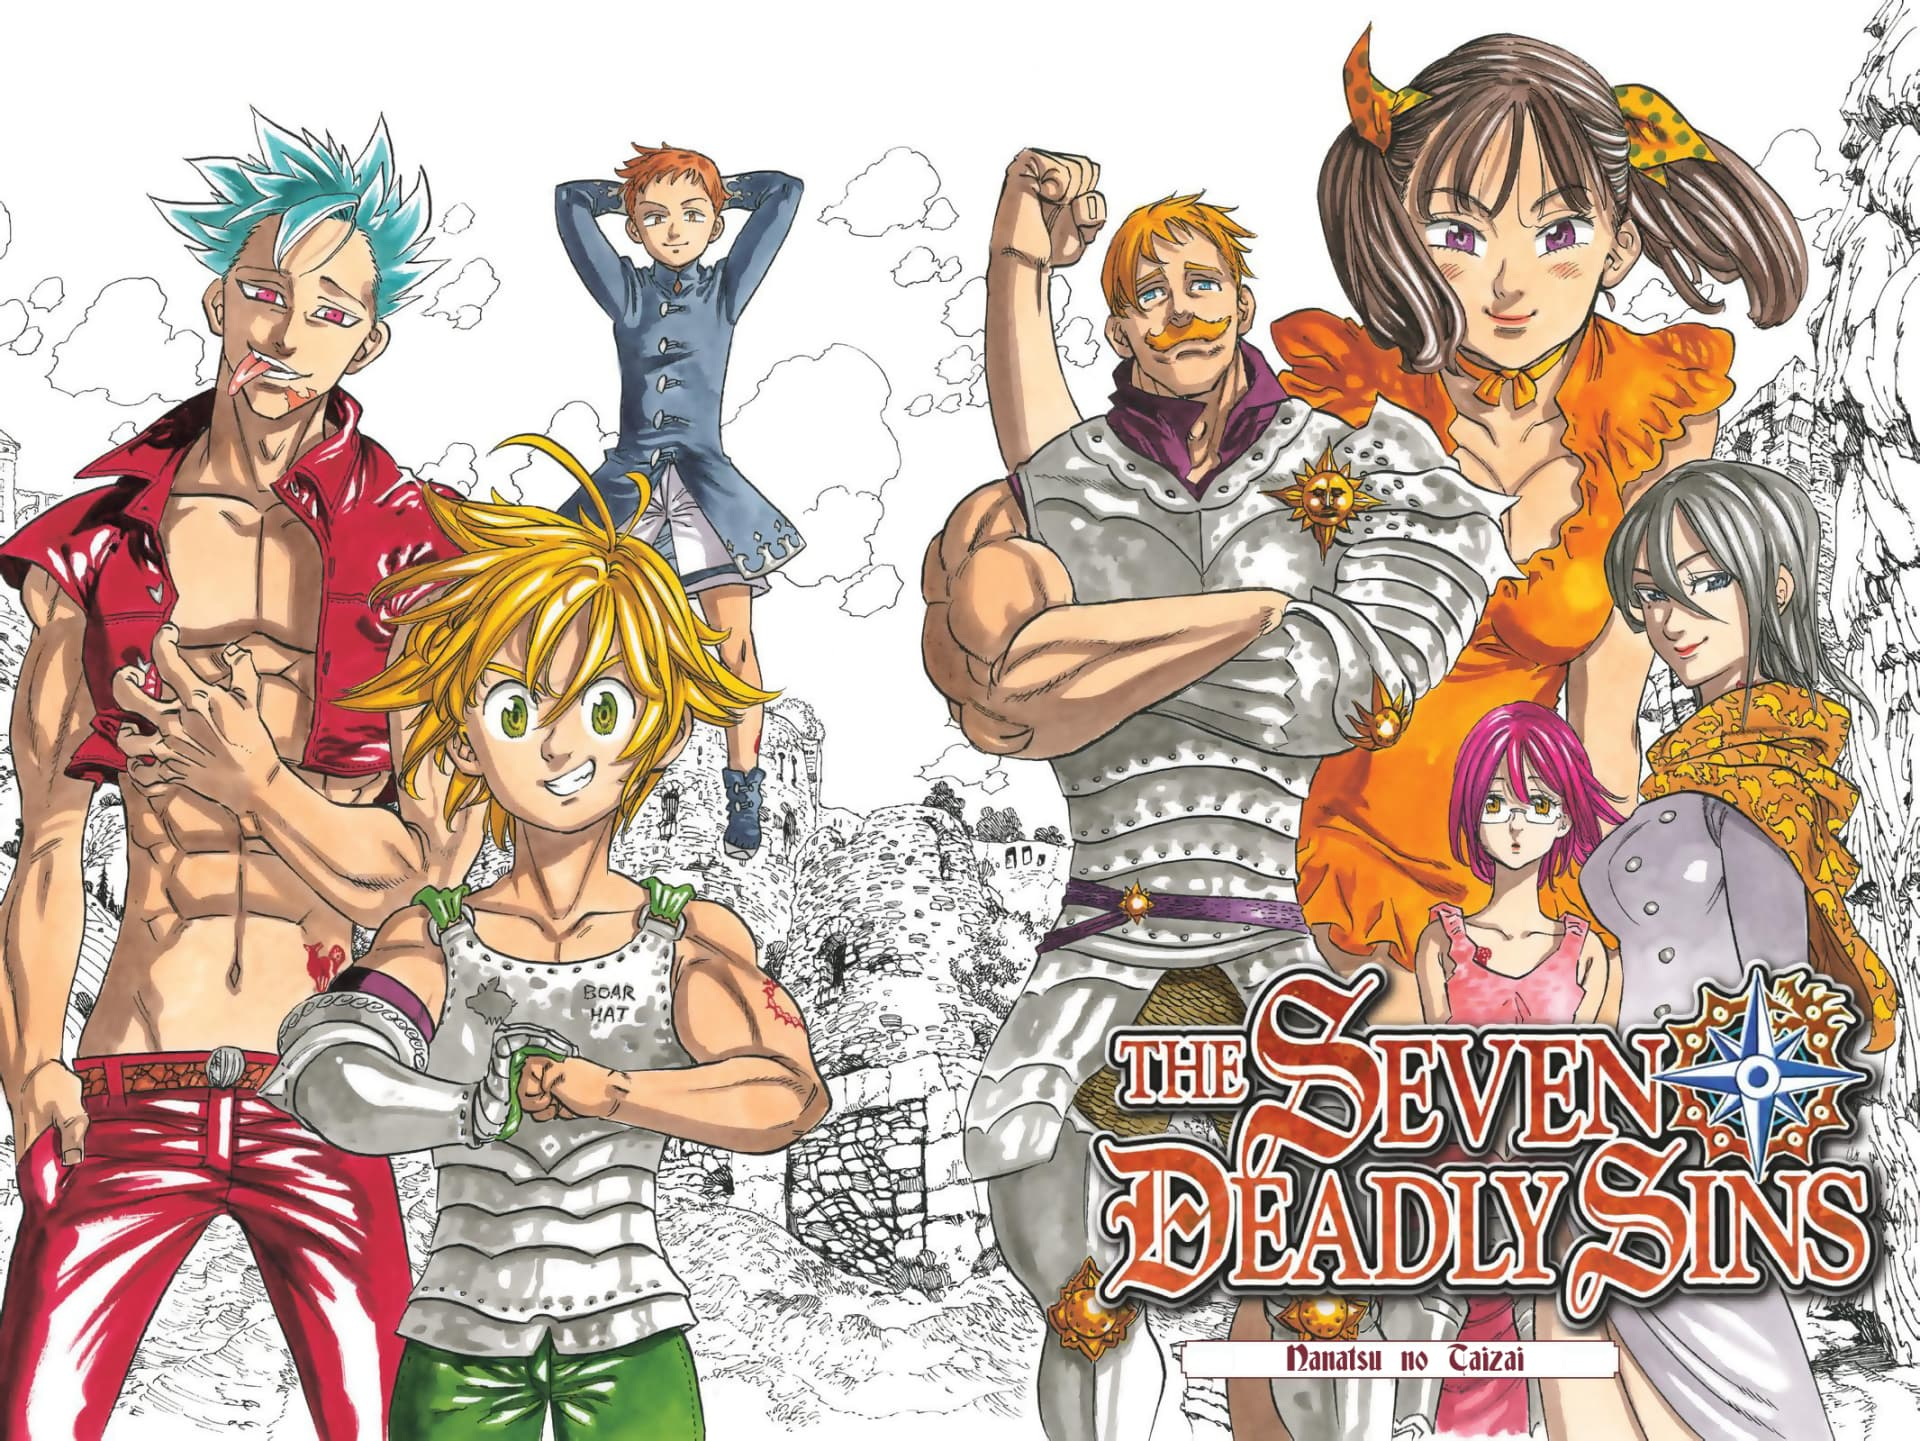 Wallpaper Of Nanatsu No Taizai Seven Deadly Sins Heroes